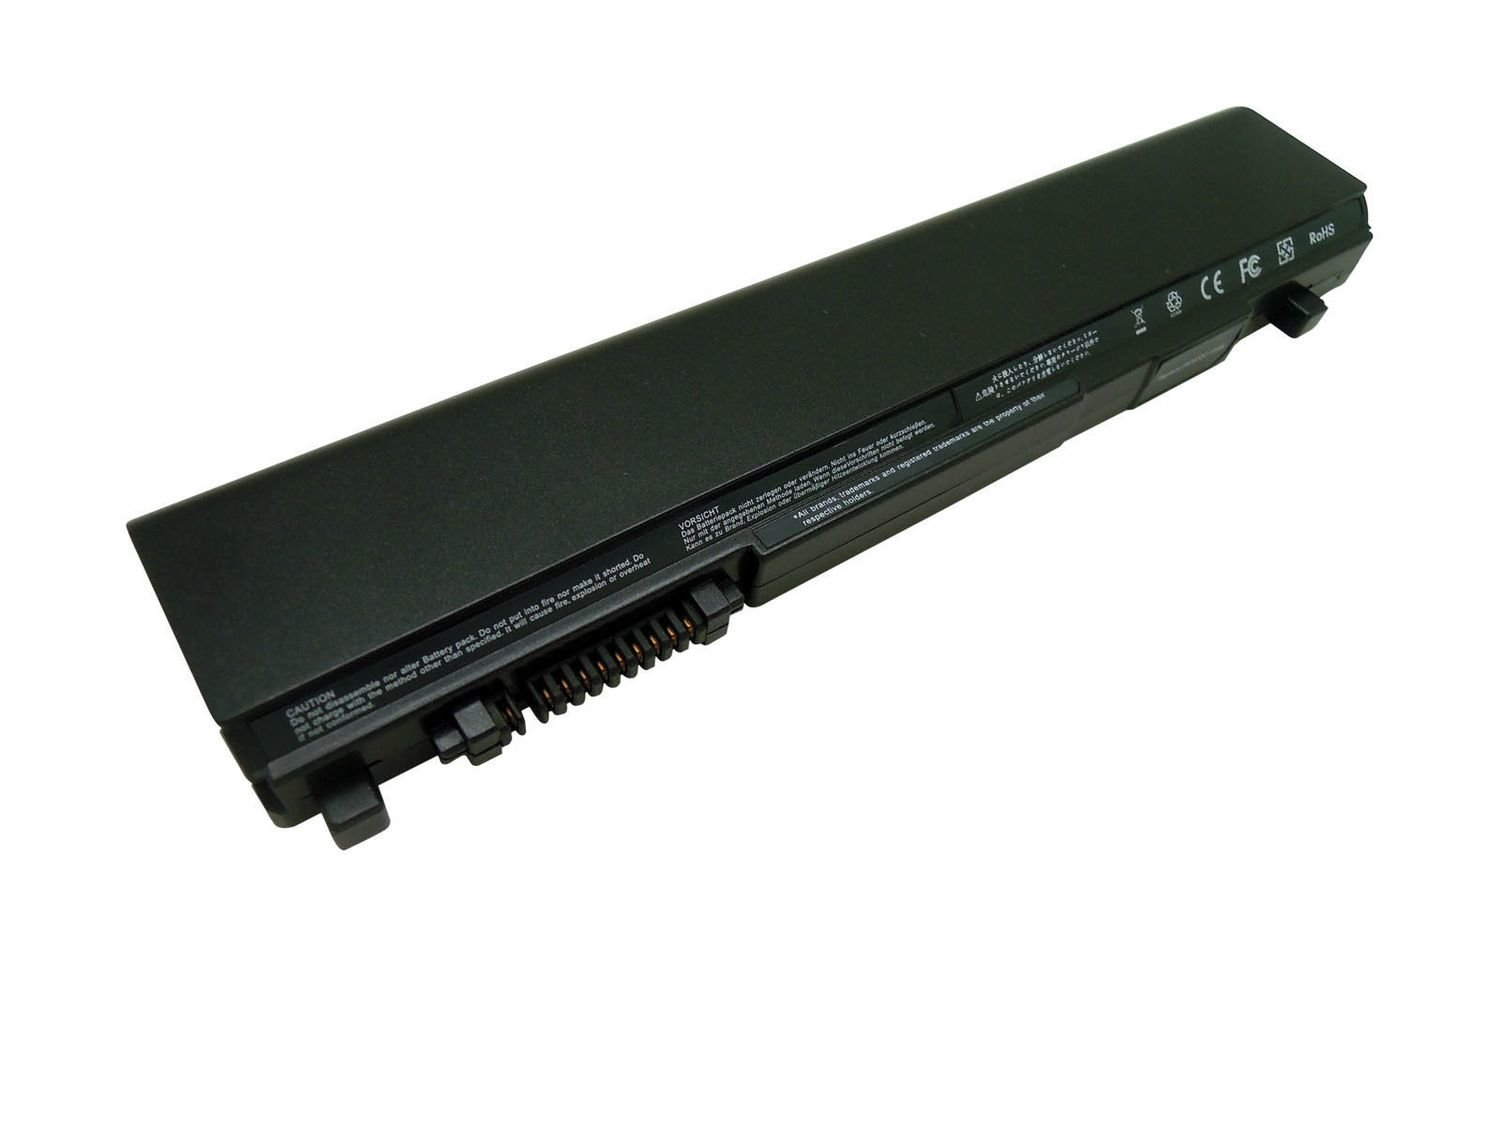 Toshiba tecra R700 R840 R940 series Compatible laptop battery